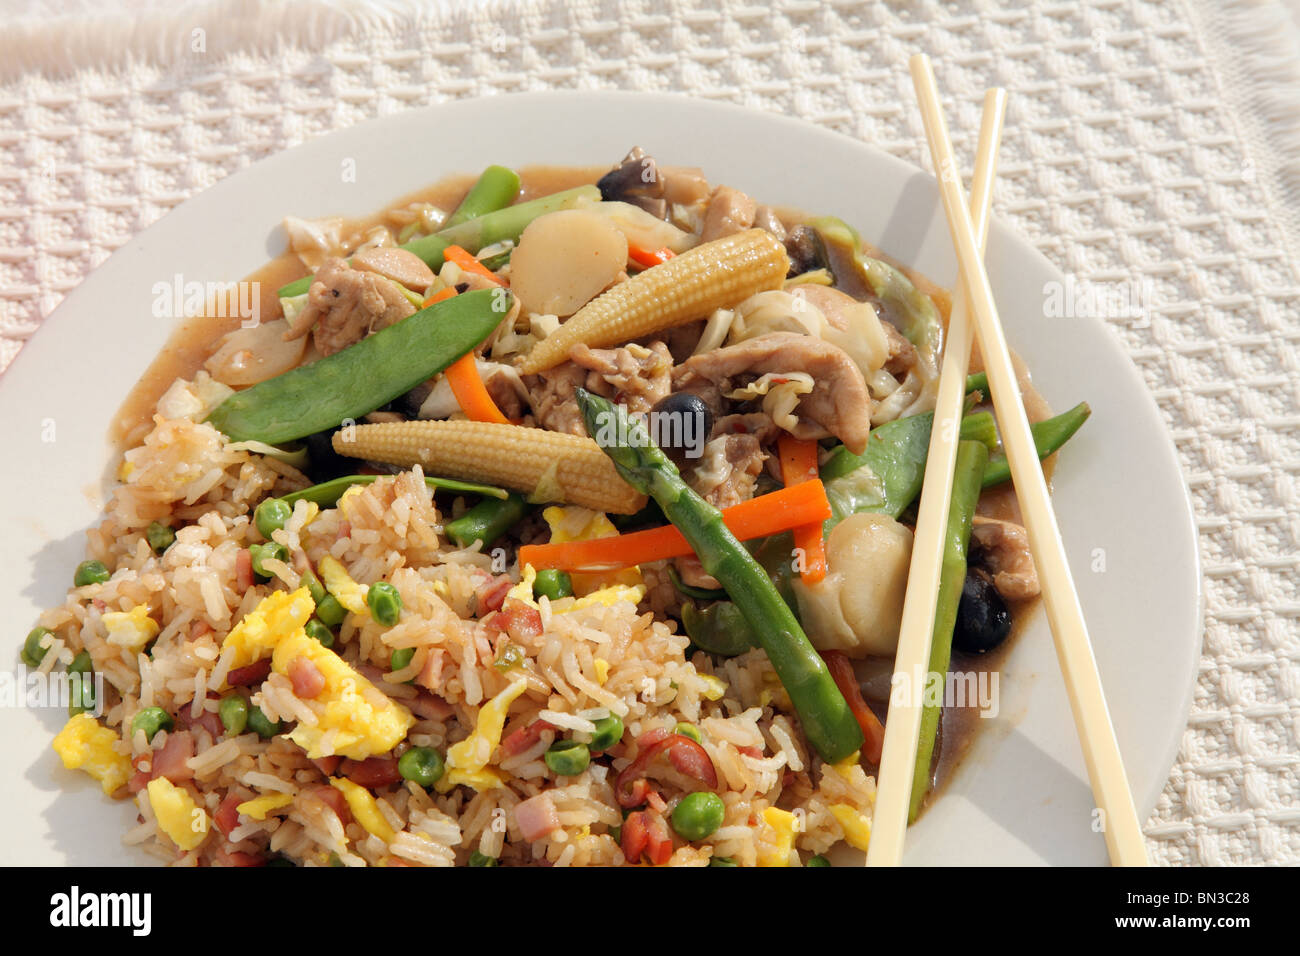 close-up plate of colorful Chinese chicken and vegetable stir fry with chopsticks - Stock Image